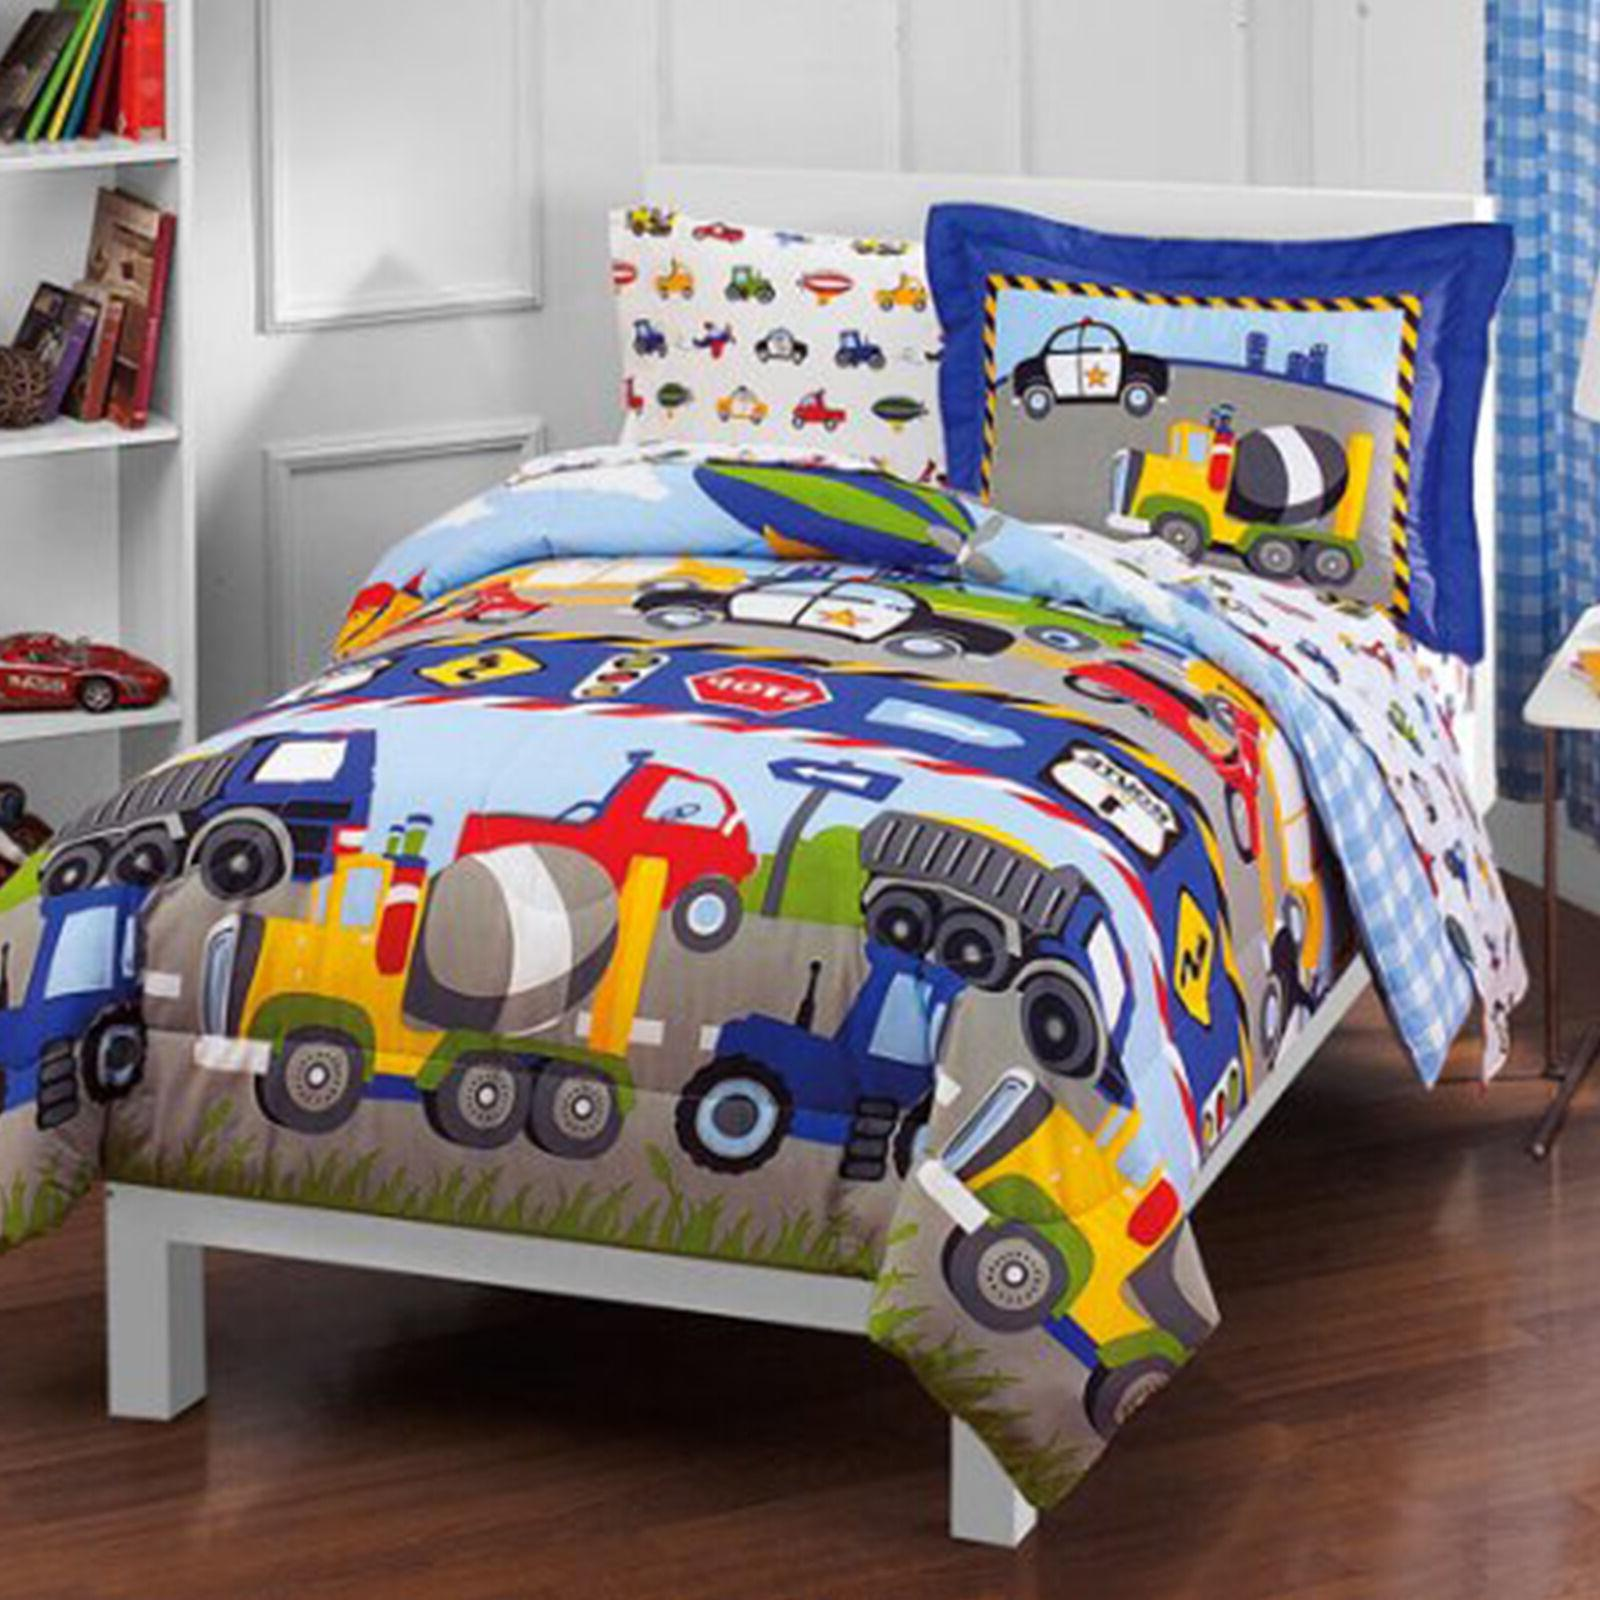 Toddler Bedding Set Reversible Comforter With Sheets Boy Gir